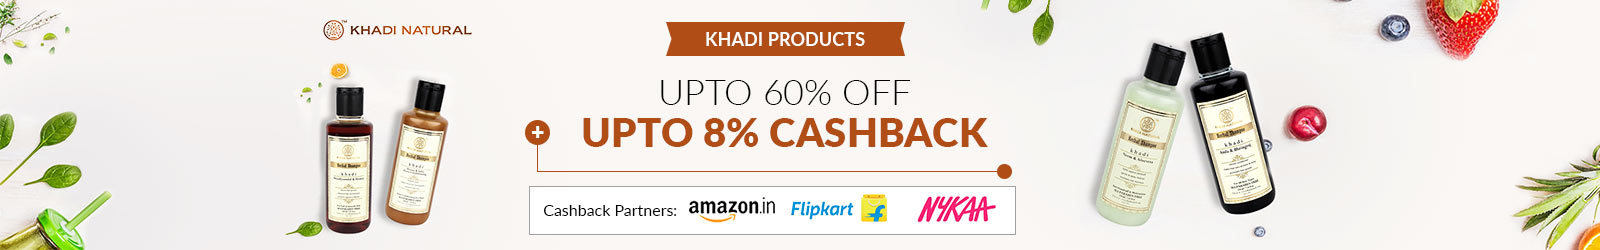 Abeers Khadi Products Price List: Upto 50% Off Offers Online